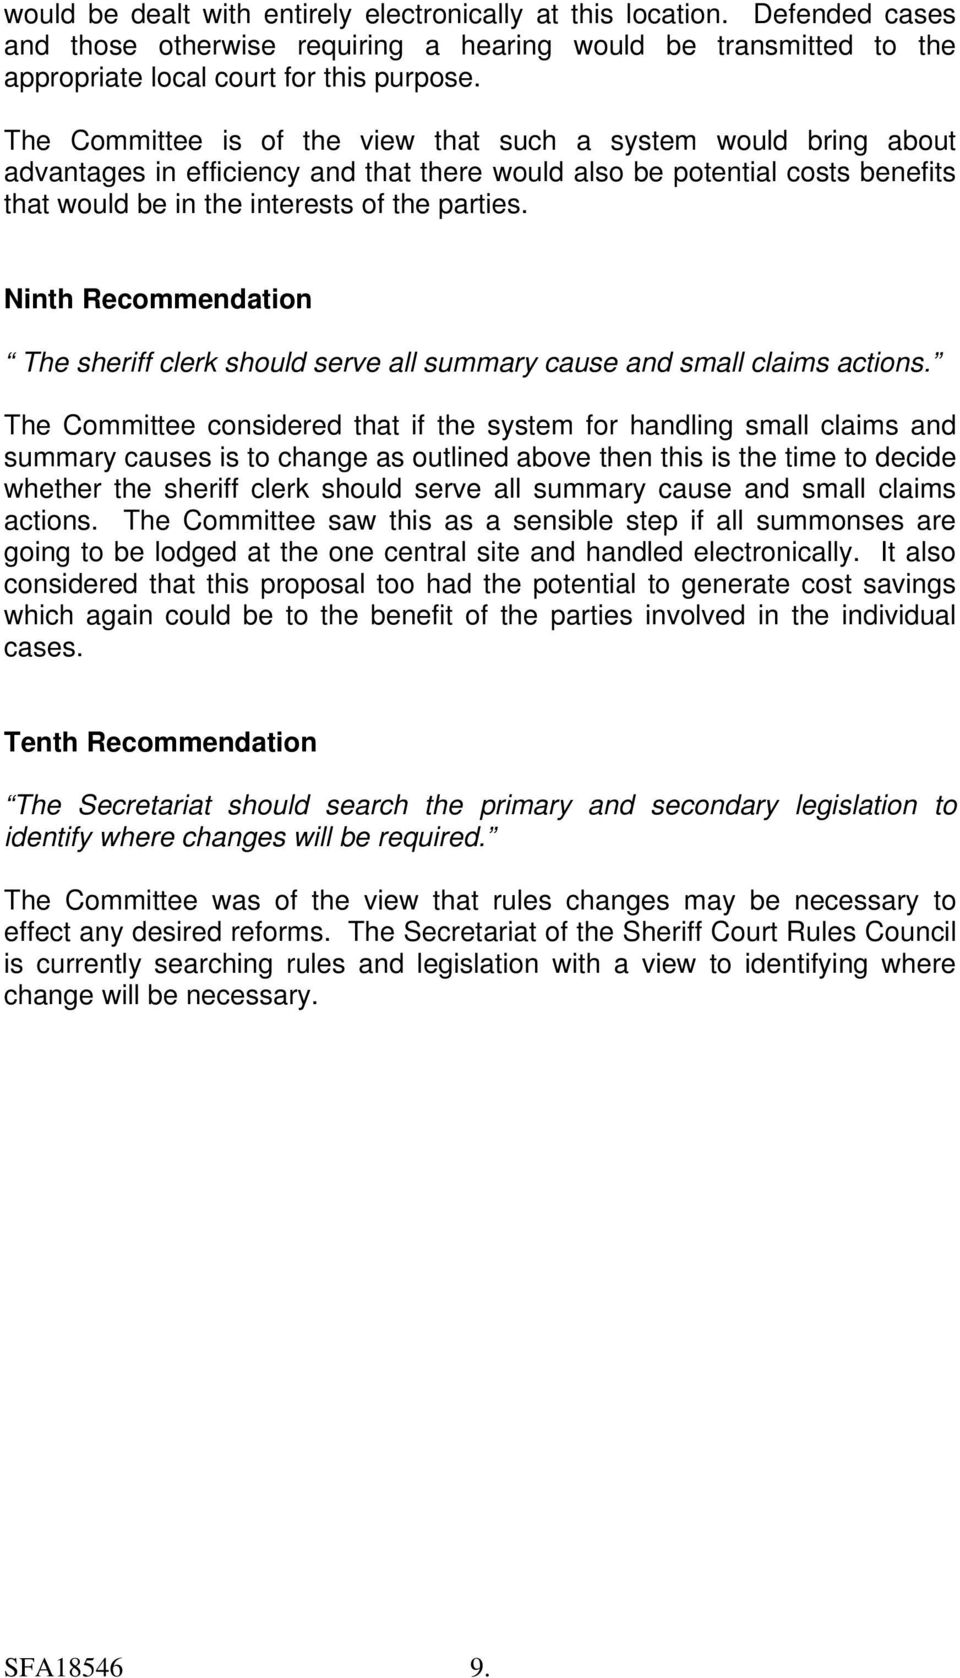 Ninth Recommendation The sheriff clerk should serve all summary cause and small claims actions.